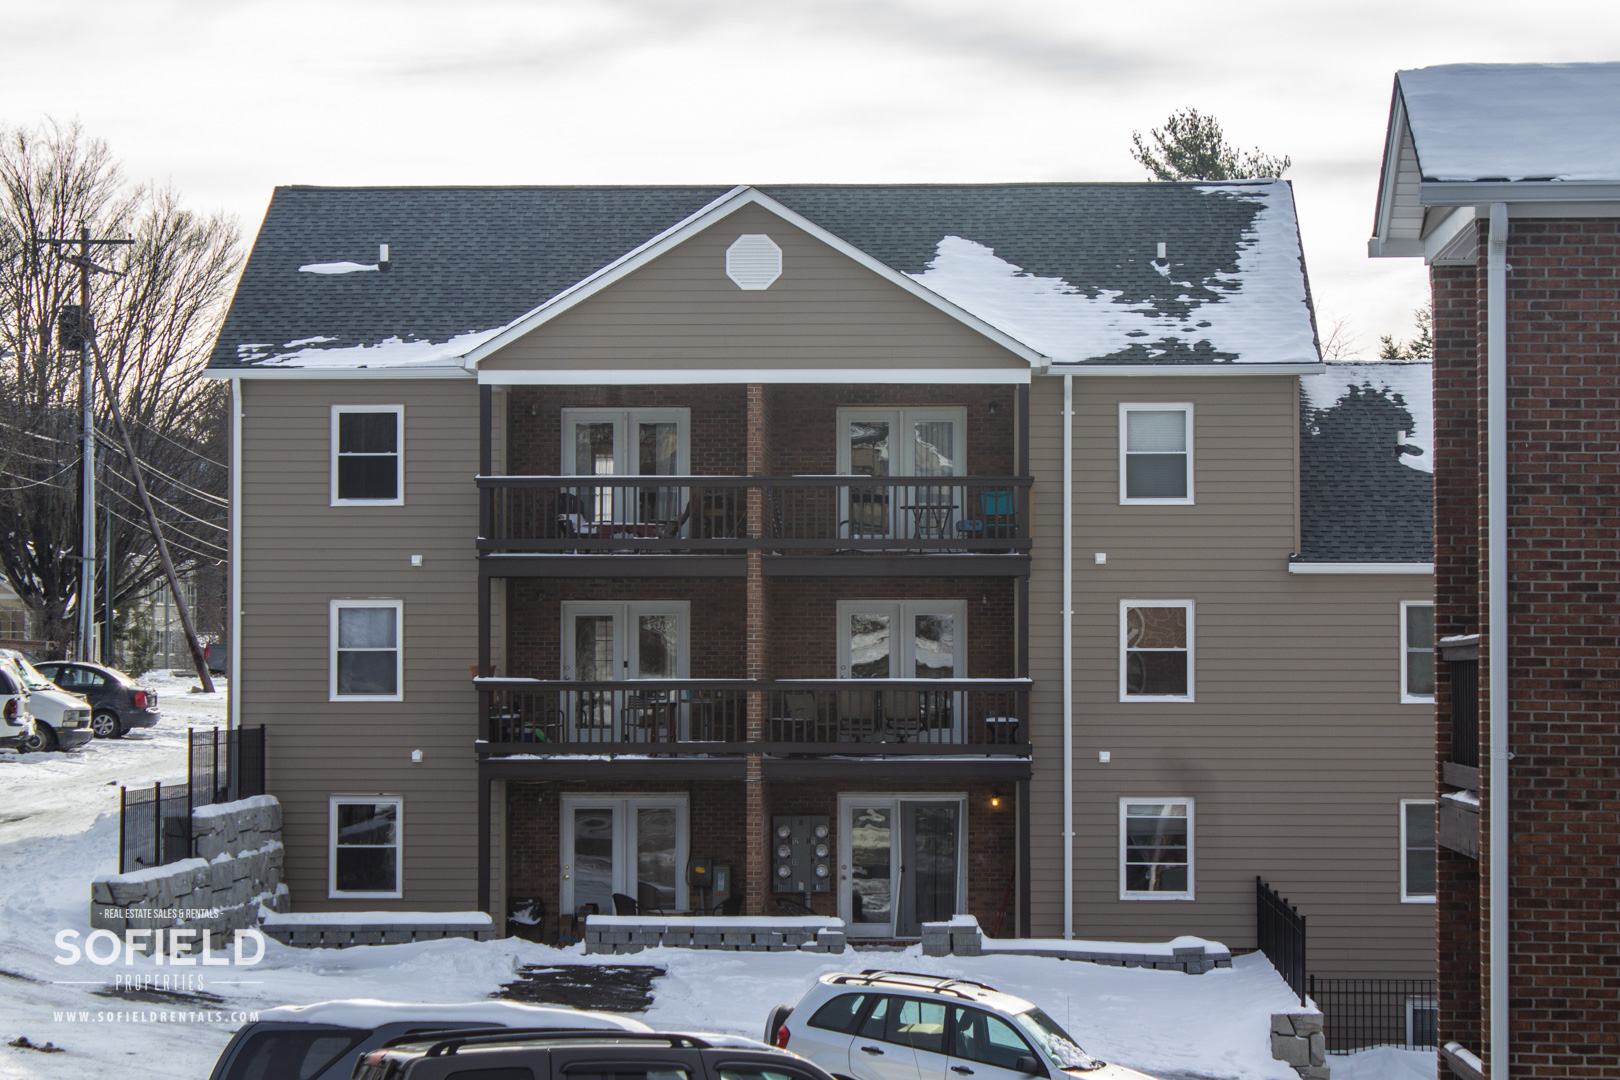 Sofield Properties & Apartment Rentals of Boone, NC